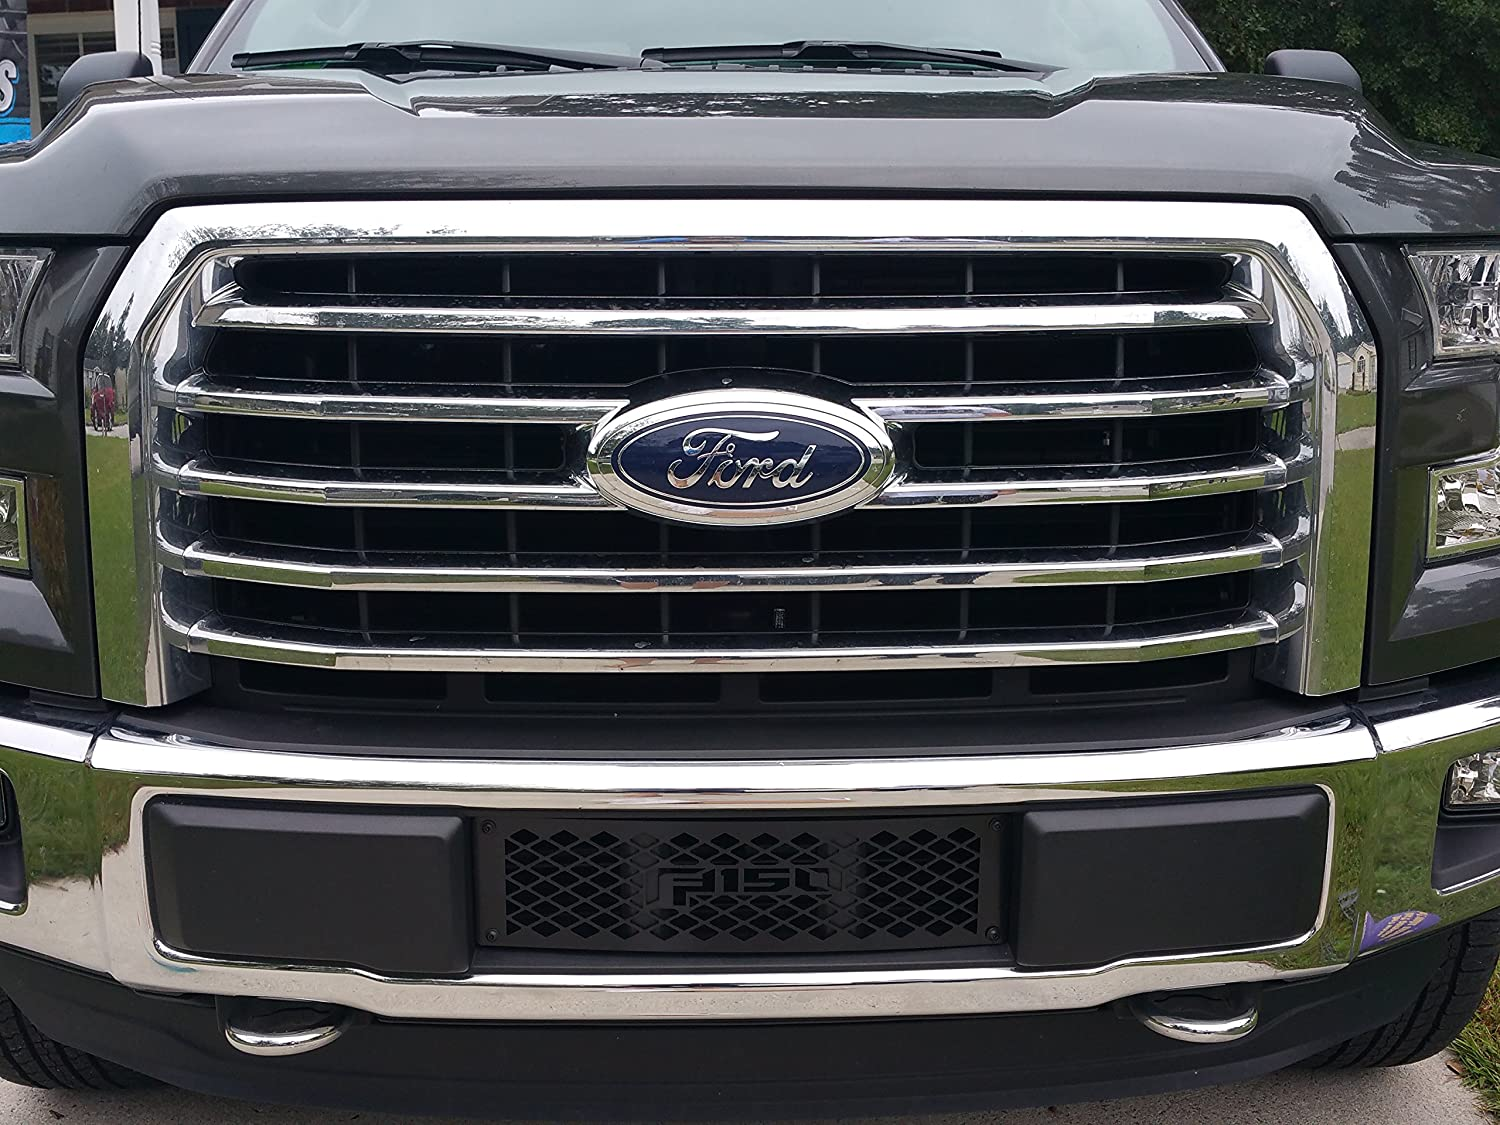 Ford F-150 Small Diamond Design Powder Coated Black Bumper Grille Insert Mountains2Metal 2015